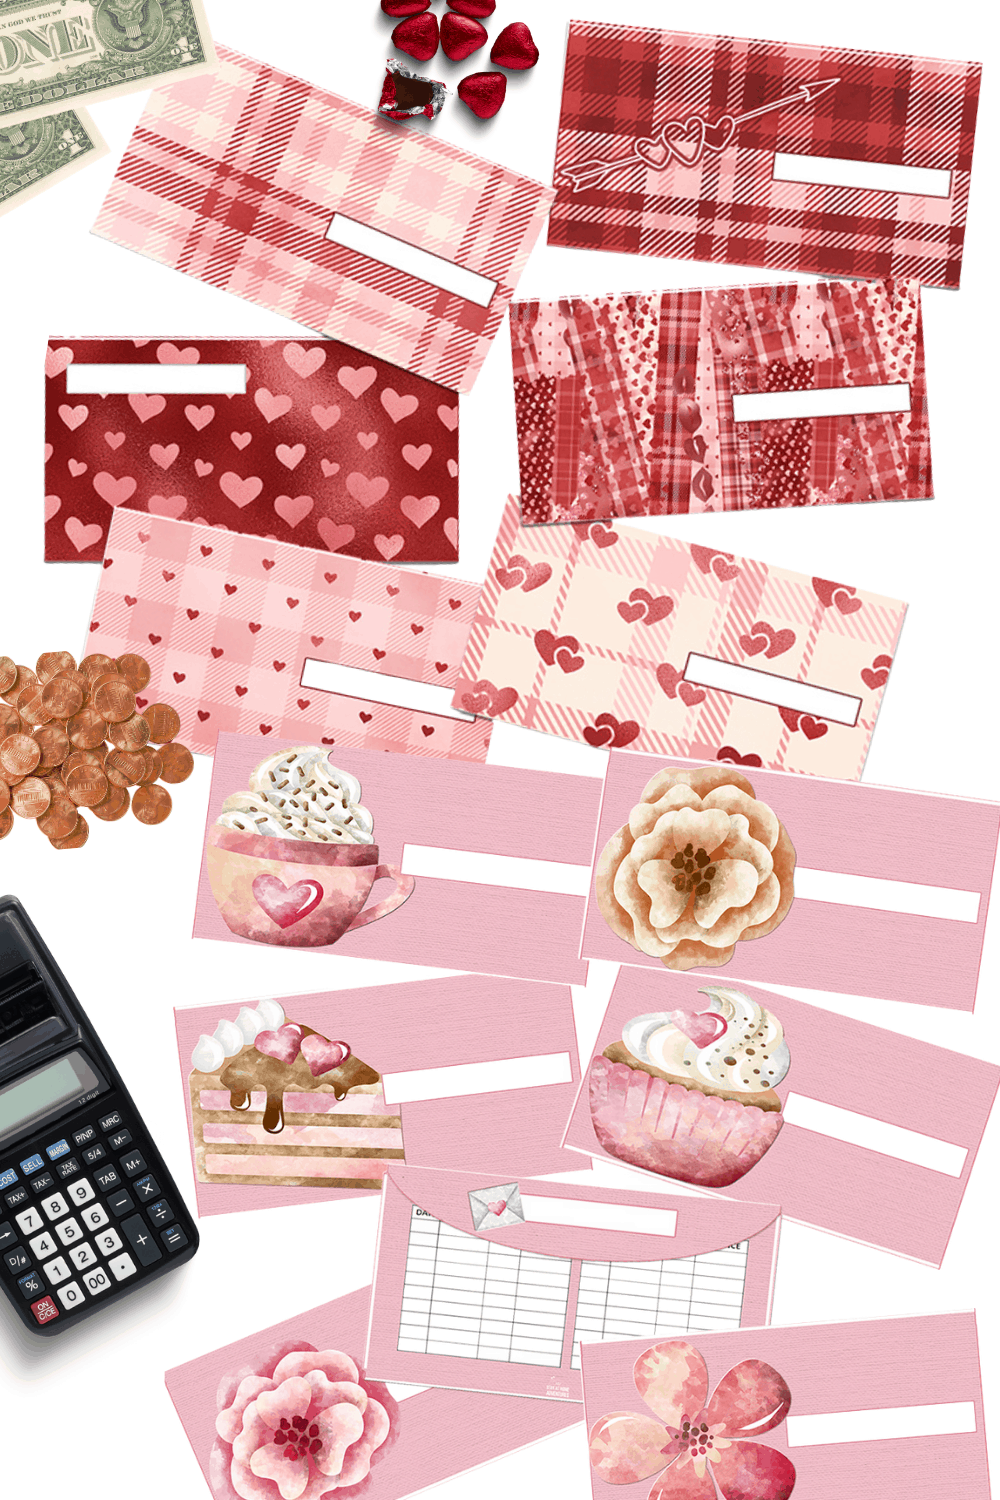 Check out our St Valentine's Day cash envelopes sets. Different styles to fit your needs. Wallet size fit. Prices are ranging from $0 and up. via @mystayathome